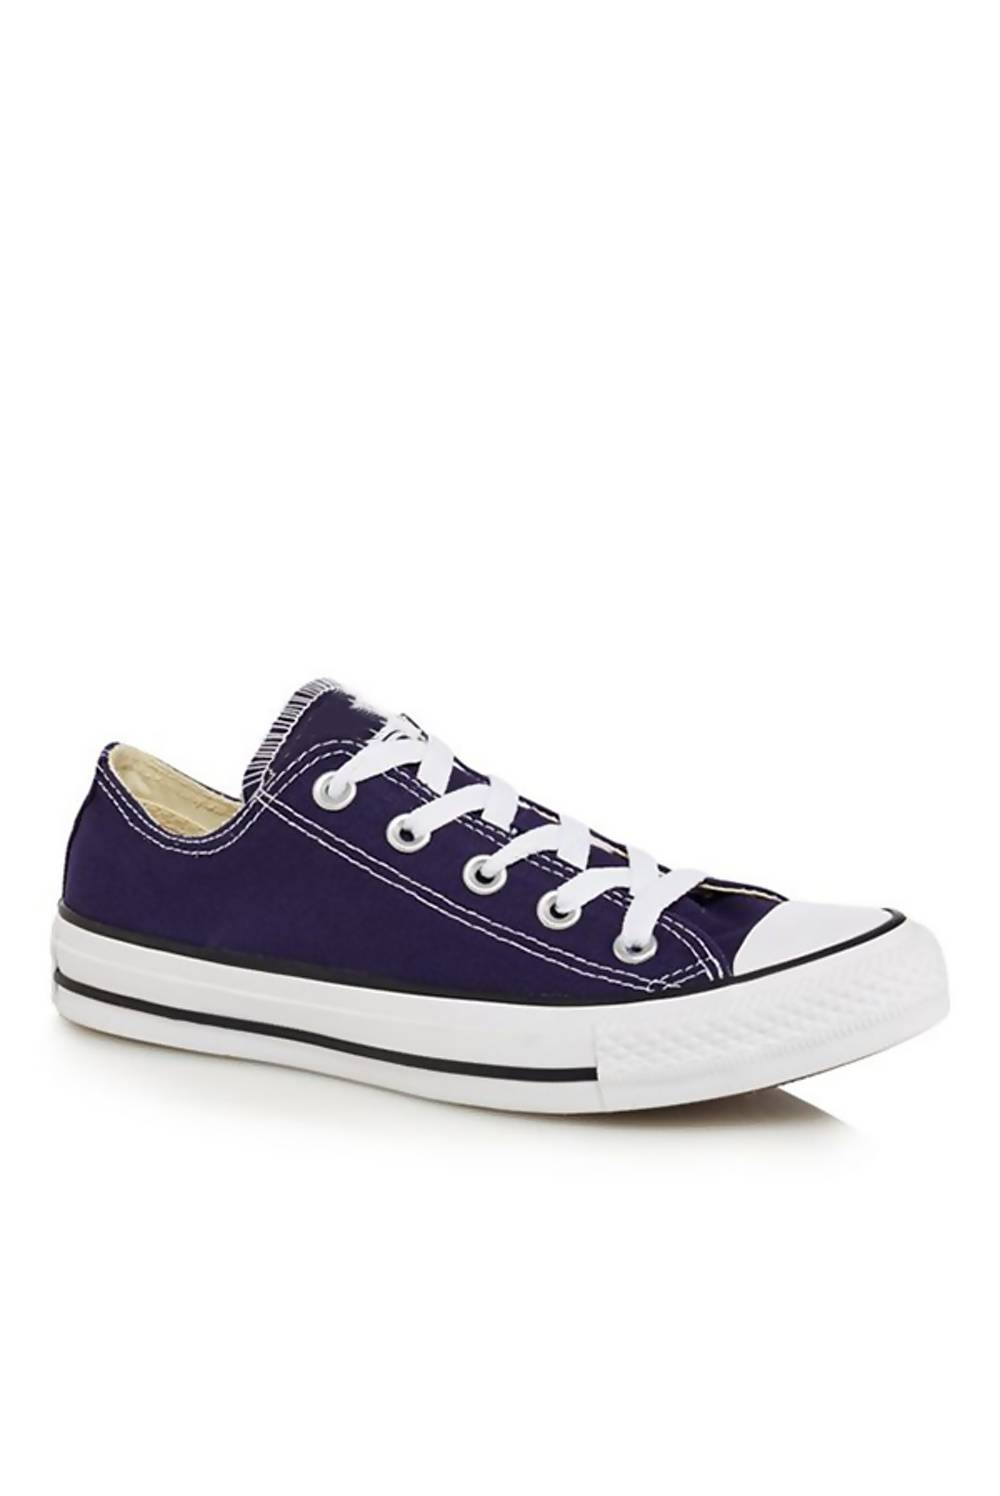 Navy Canvas Flat Lace Up Trainers J5 Fashion